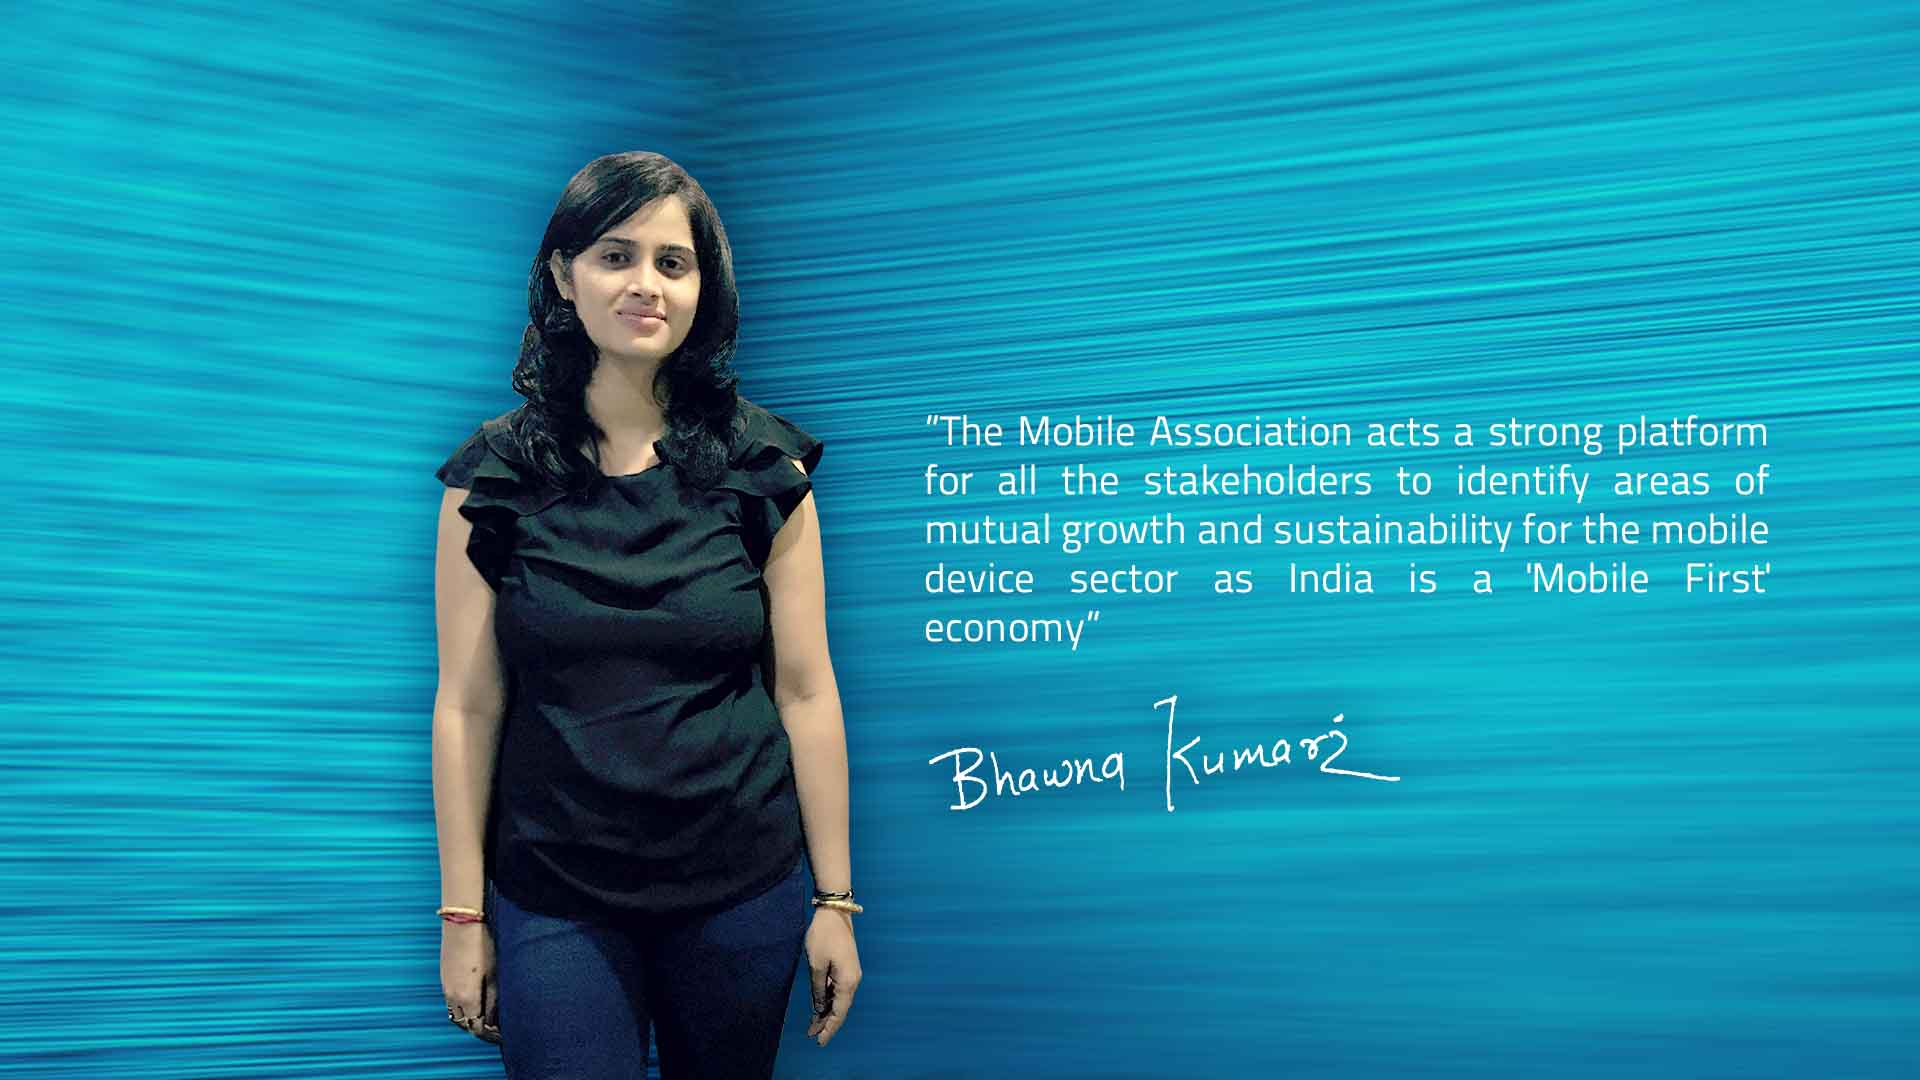 Bhawna Kumari President of The Mobile Association